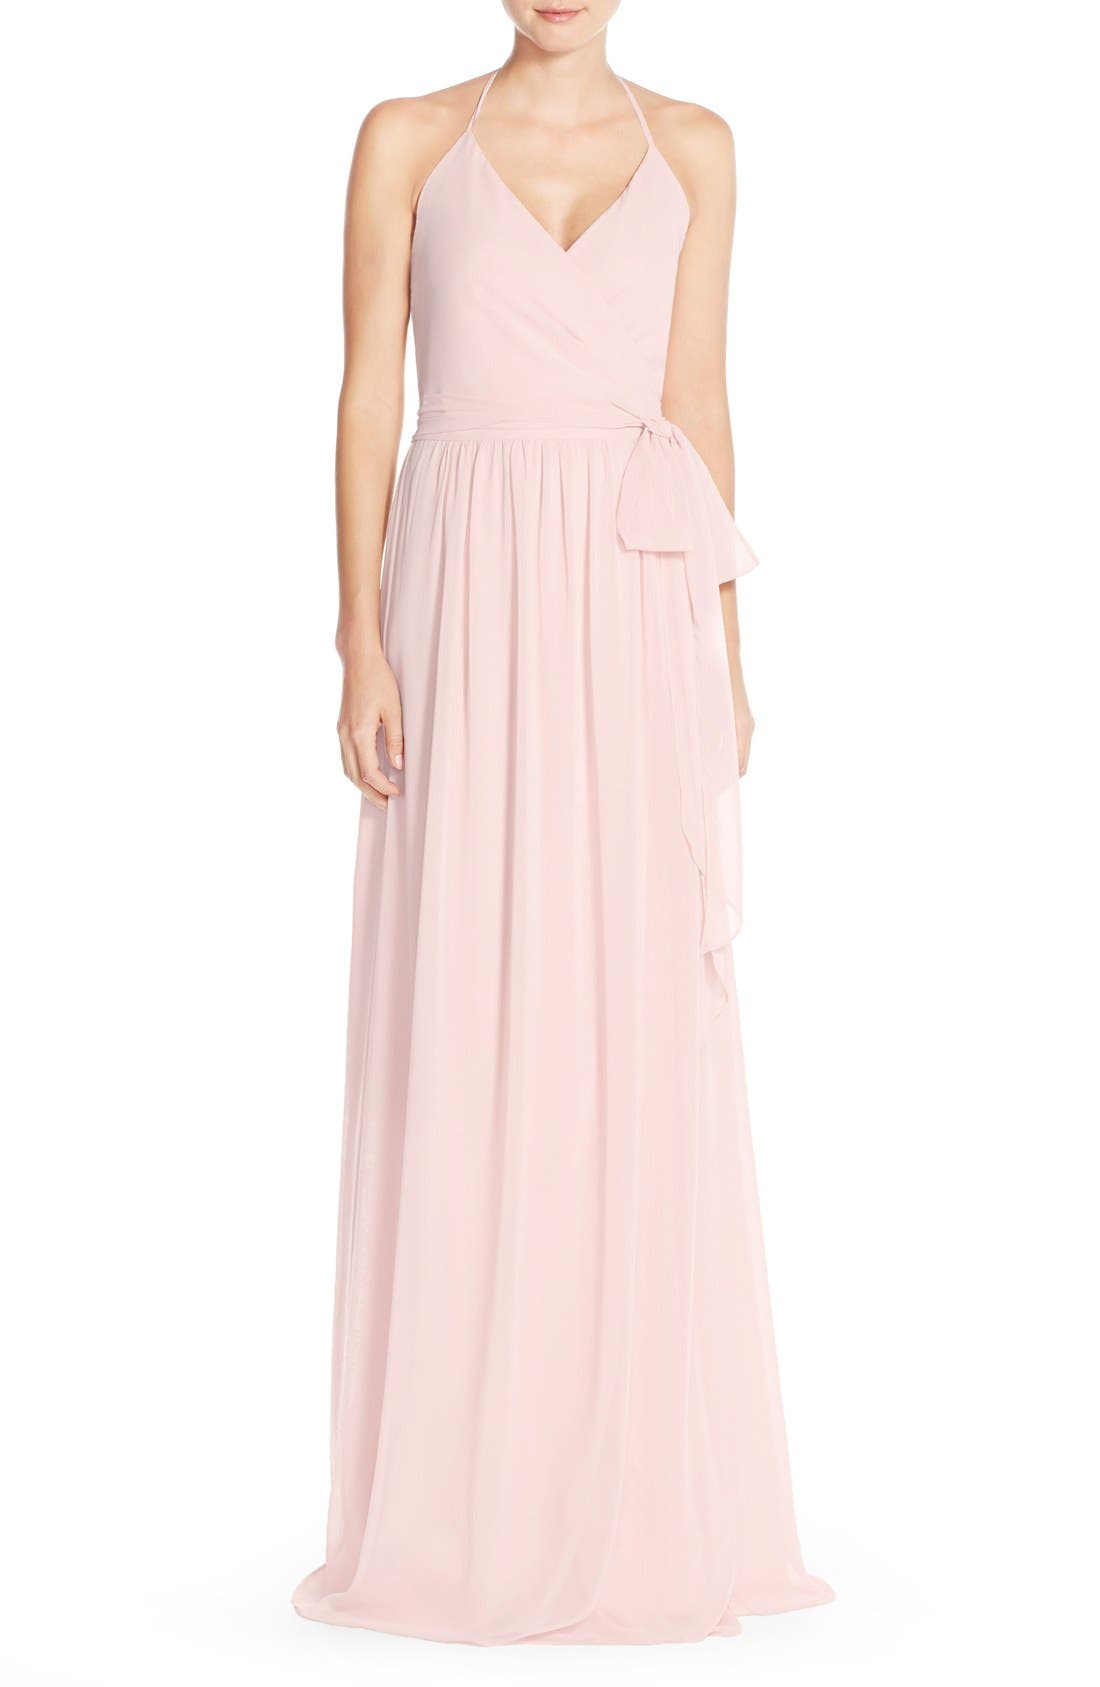 Main Image - Ceremony by Joanna August 'DC' Halter Wrap Chiffon Gown